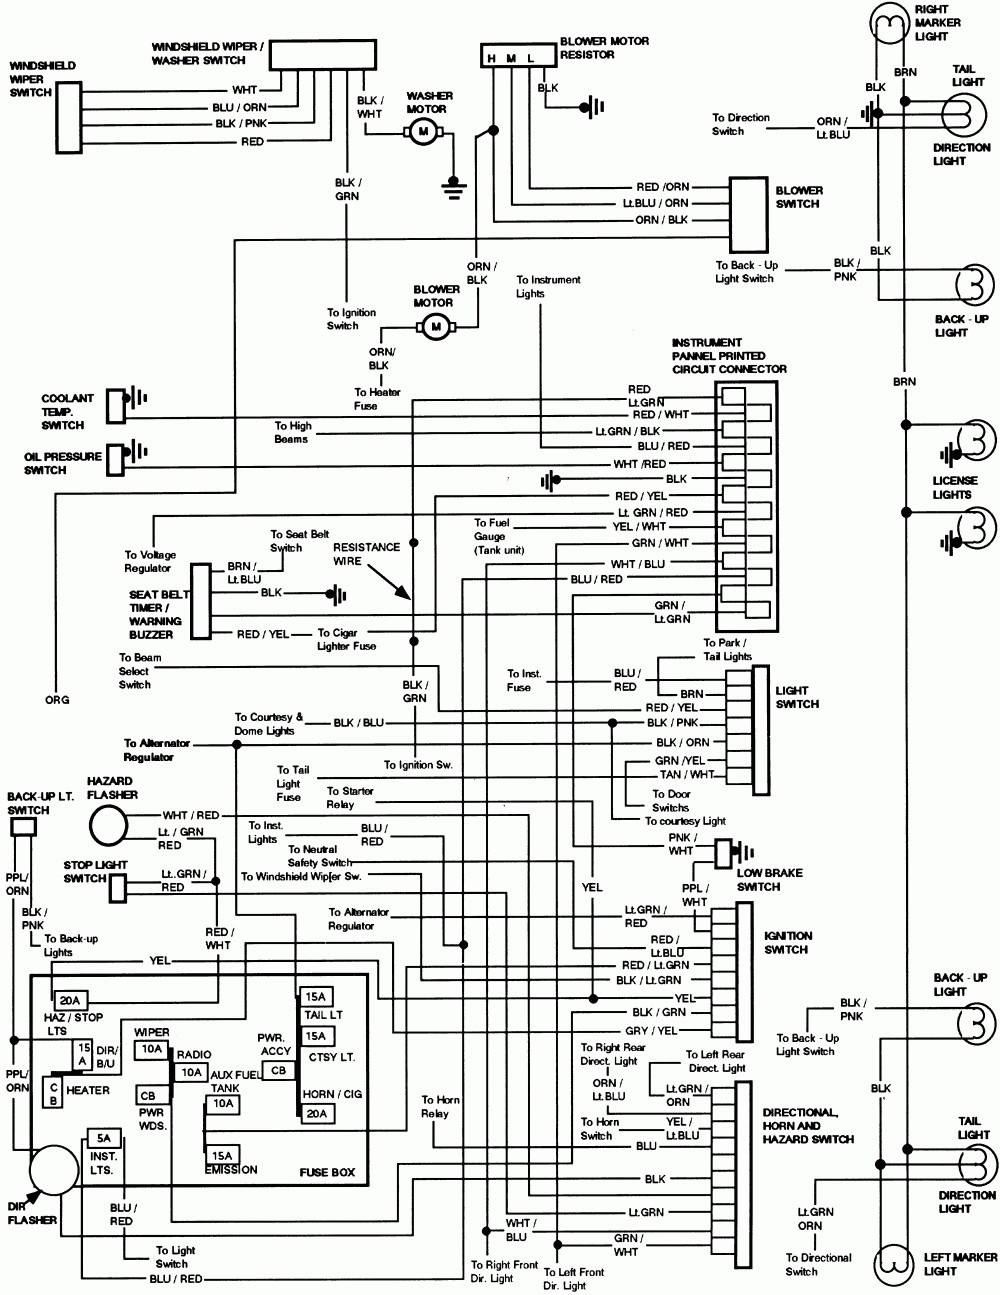 medium resolution of ford f750 wiring harness wiring diagram sample2007 f750 wiring harness diagram wiring diagram new ford f750